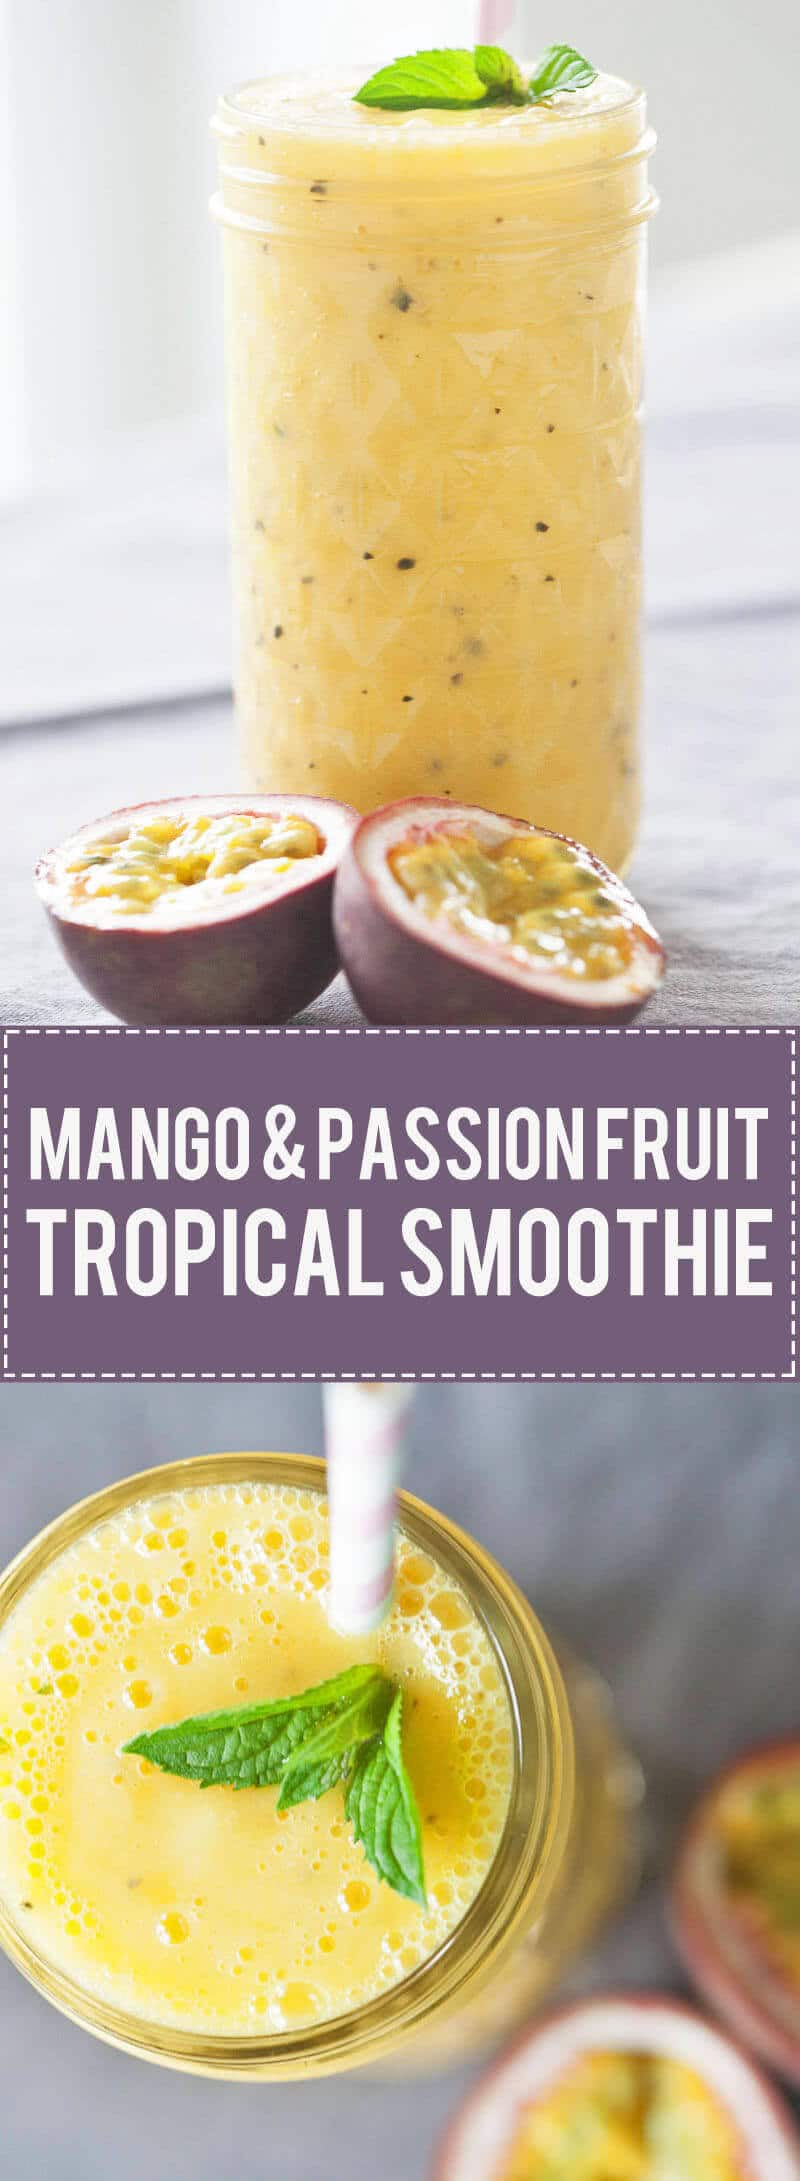 Turn mango and passion fruit into this tropical heaven. This Mango & Passion Fruit Tropical Smoothie is ideal for hot summer days.